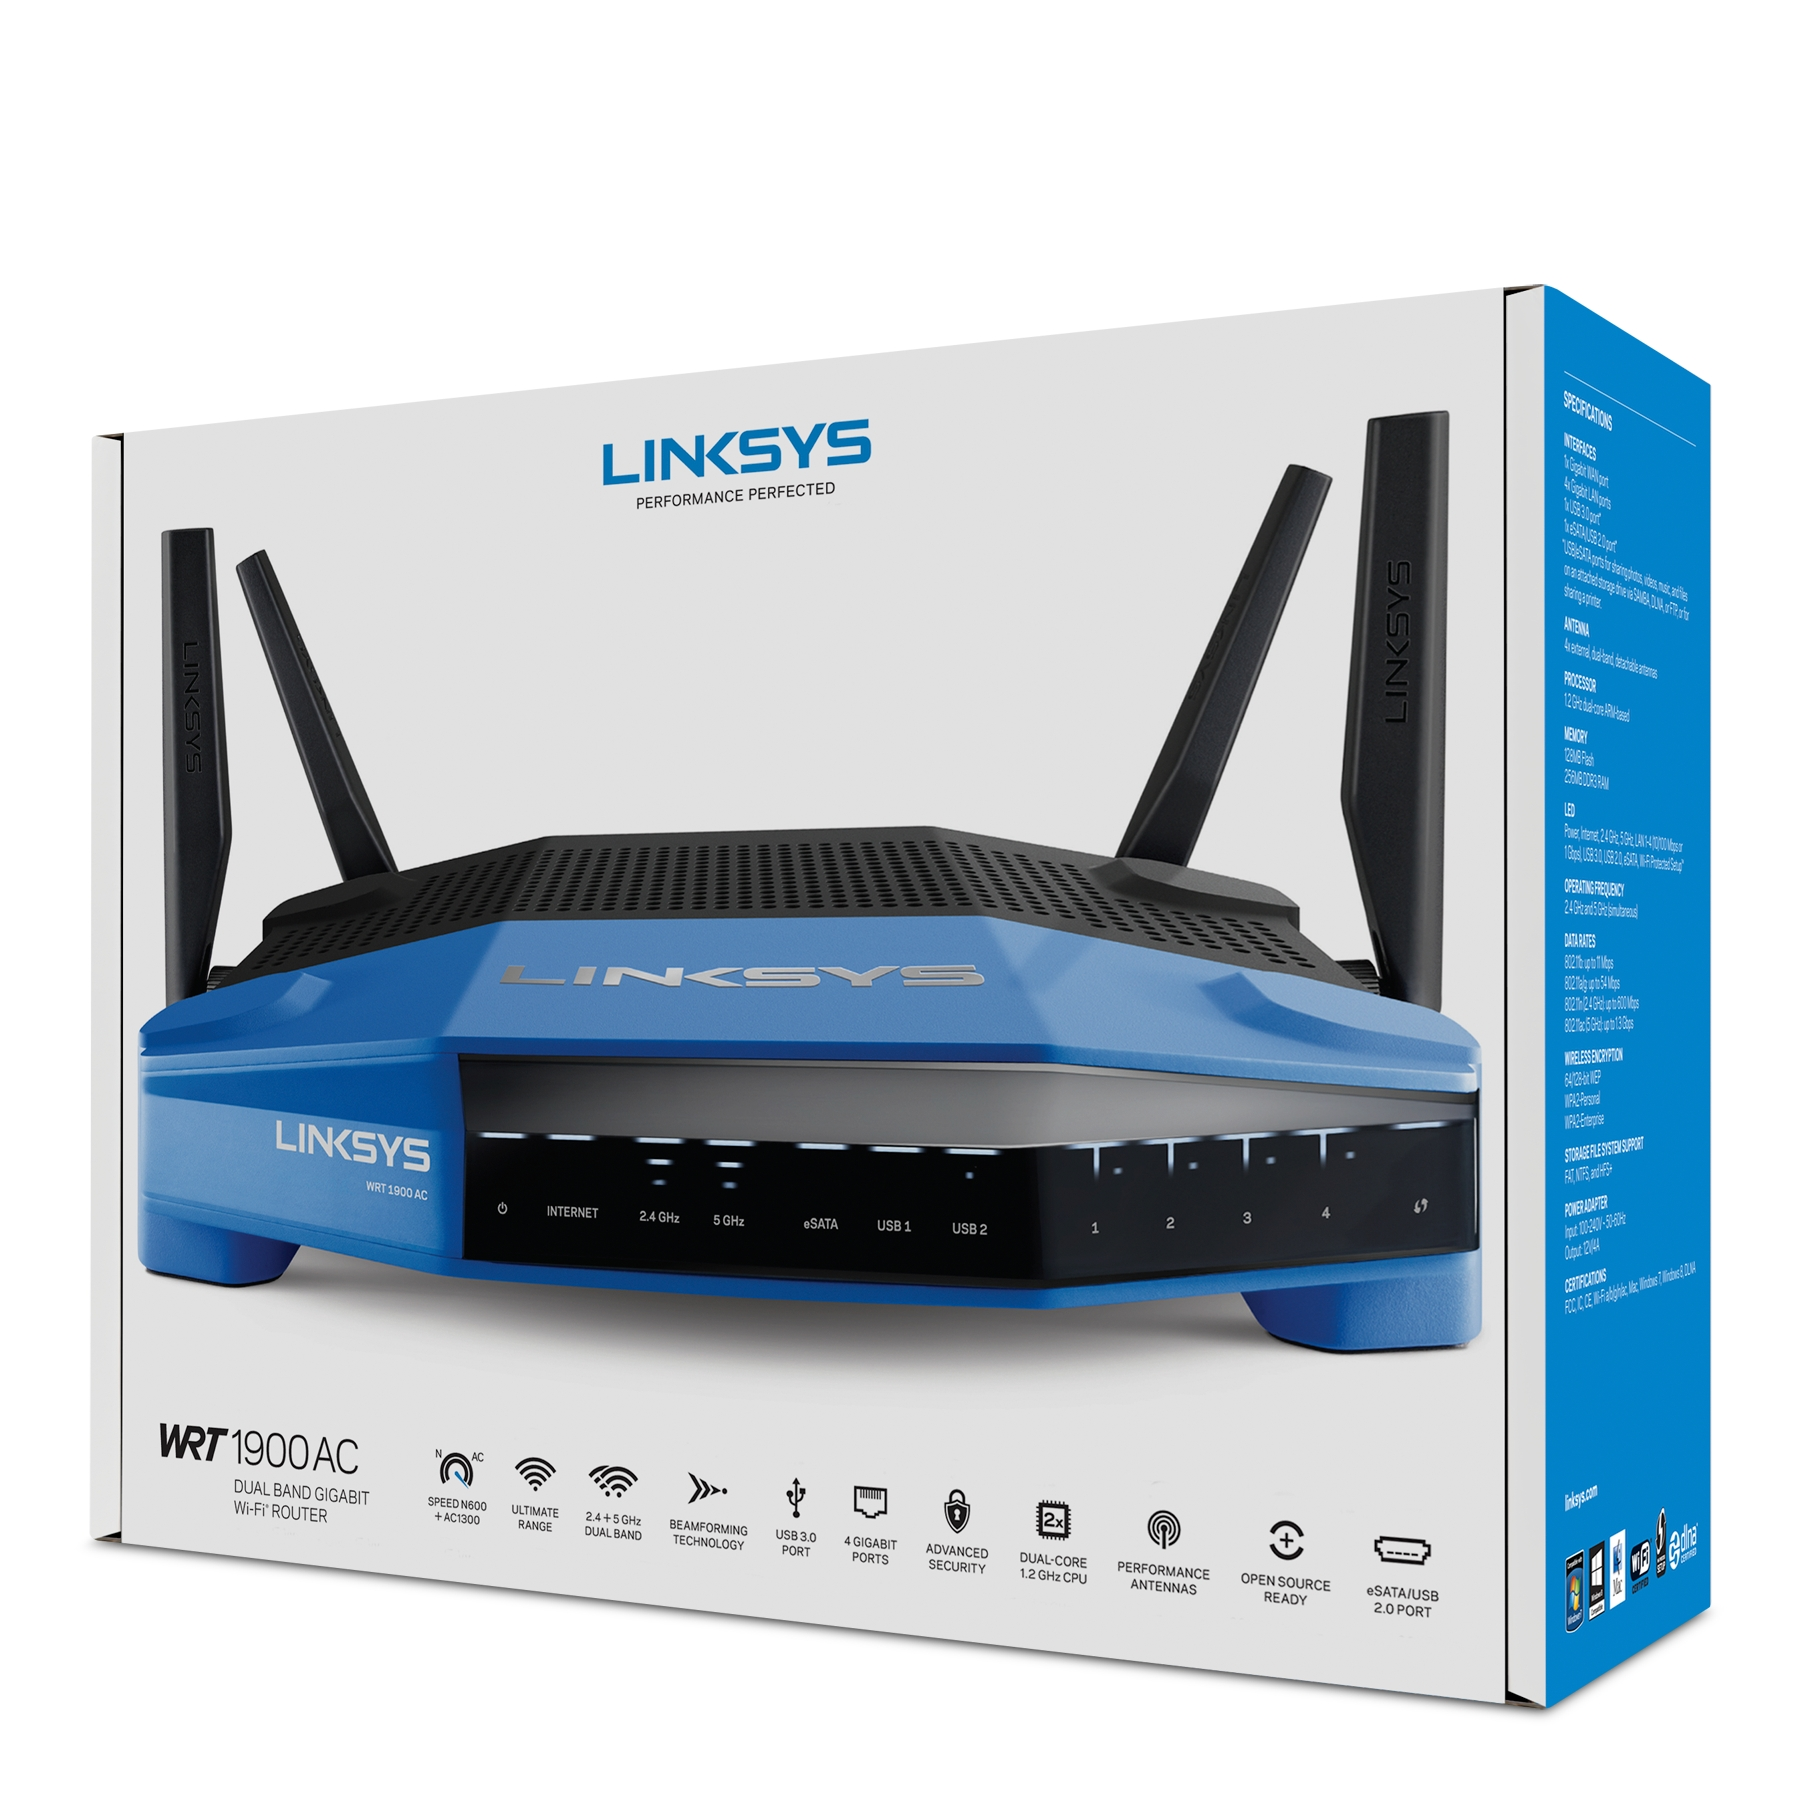 LINKSYS WRT1900ACS AC1900 DUAL-BAND SMART WI-FI WIRELESS ROUTER